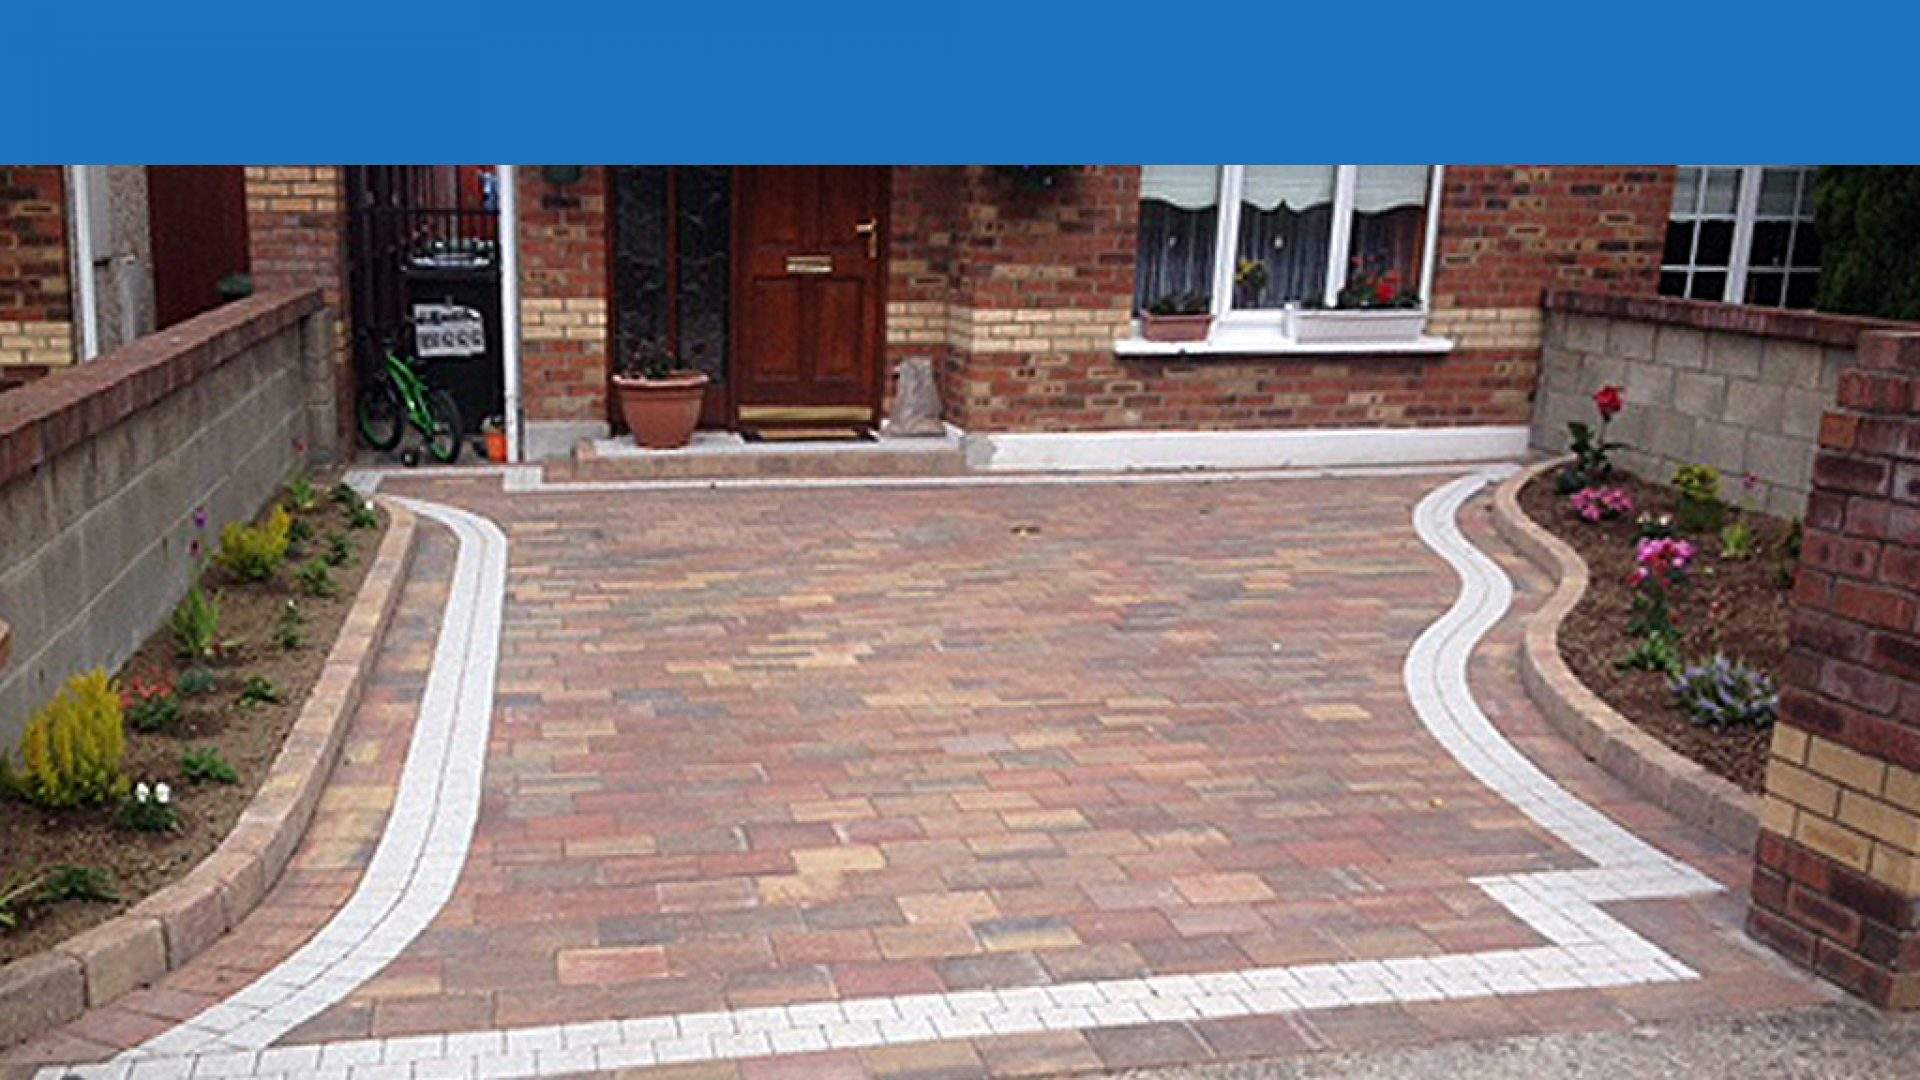 Paving Contractor Dublin, Tarmac Dublin – Driveways 4 You